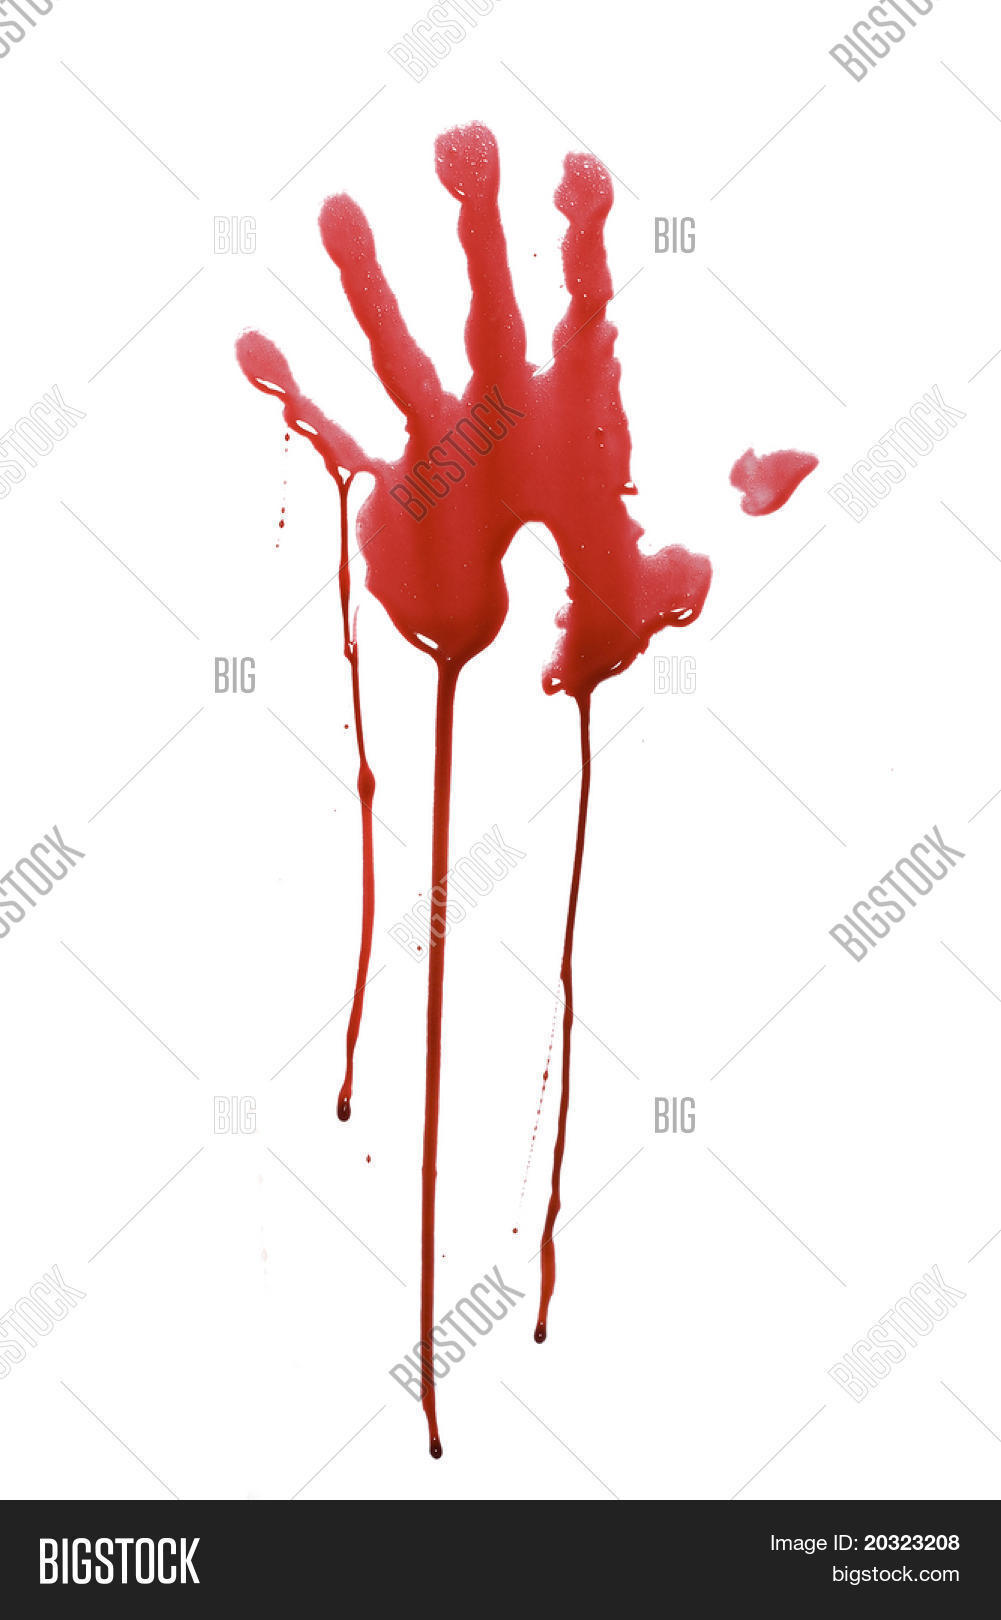 Bloody Handprint Drip Image & Photo (Free Trial) | Bigstock